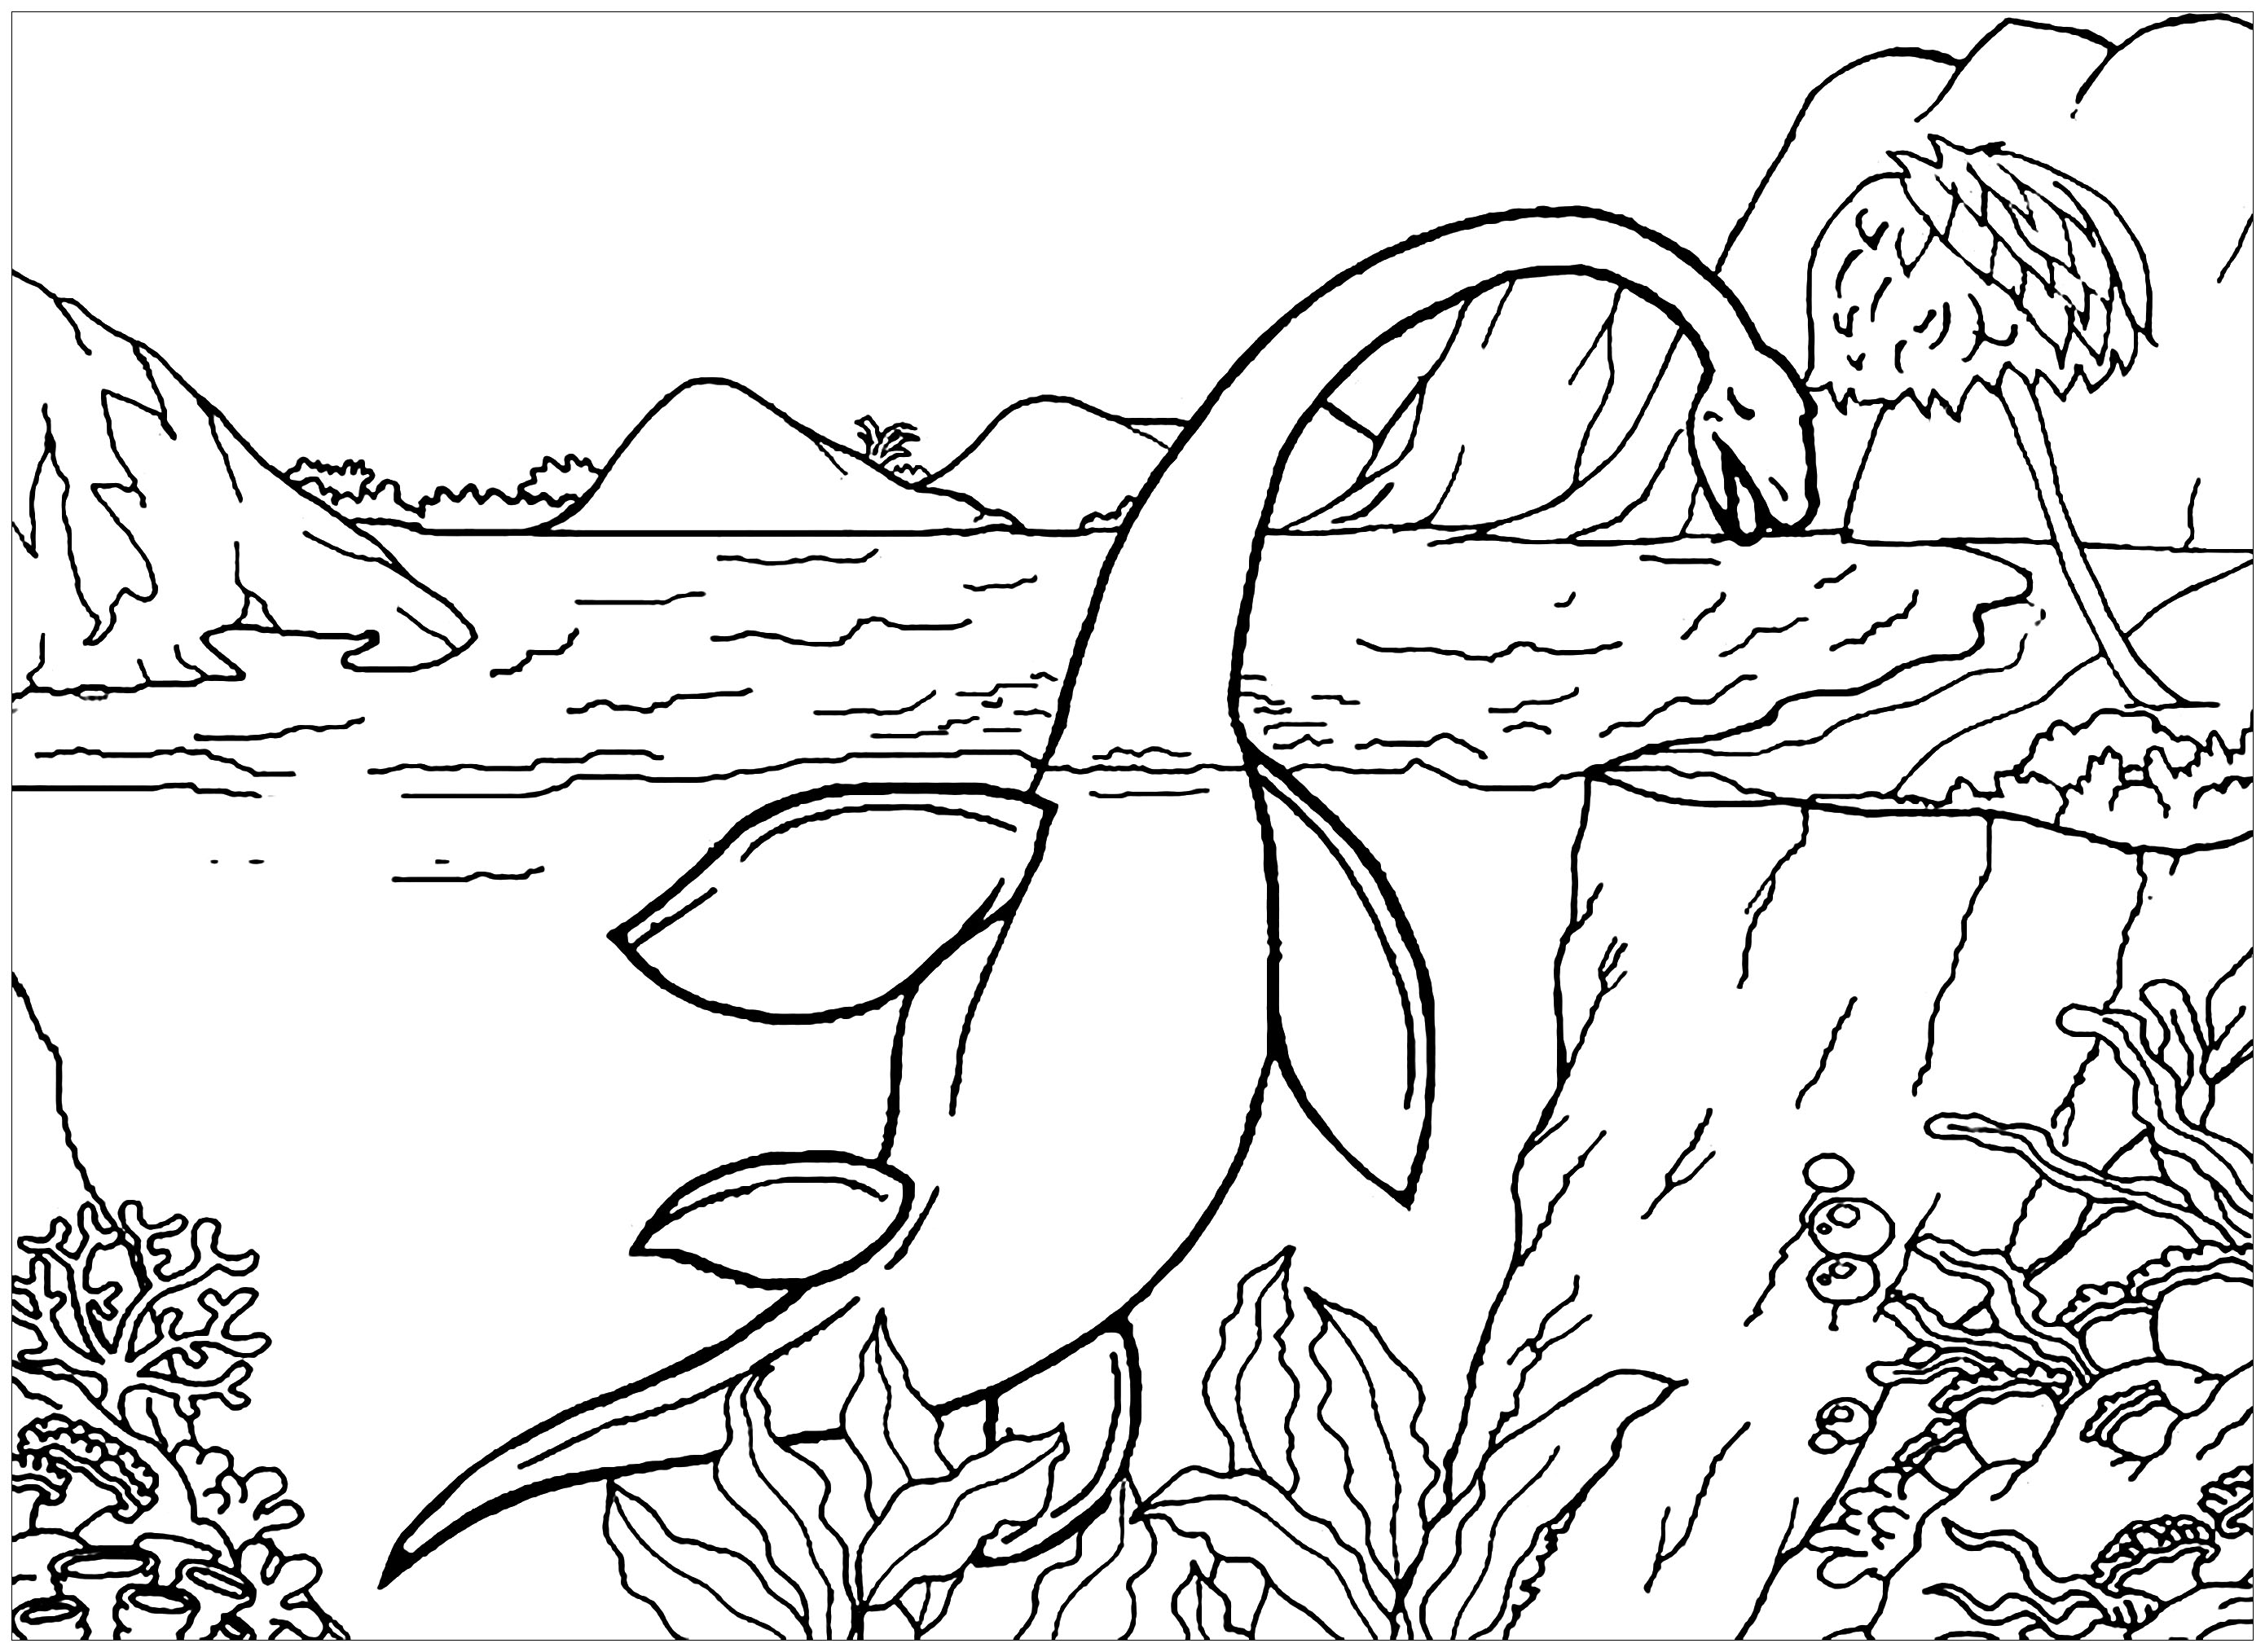 Dinosaurs to download - Dinosaurs Kids Coloring Pages